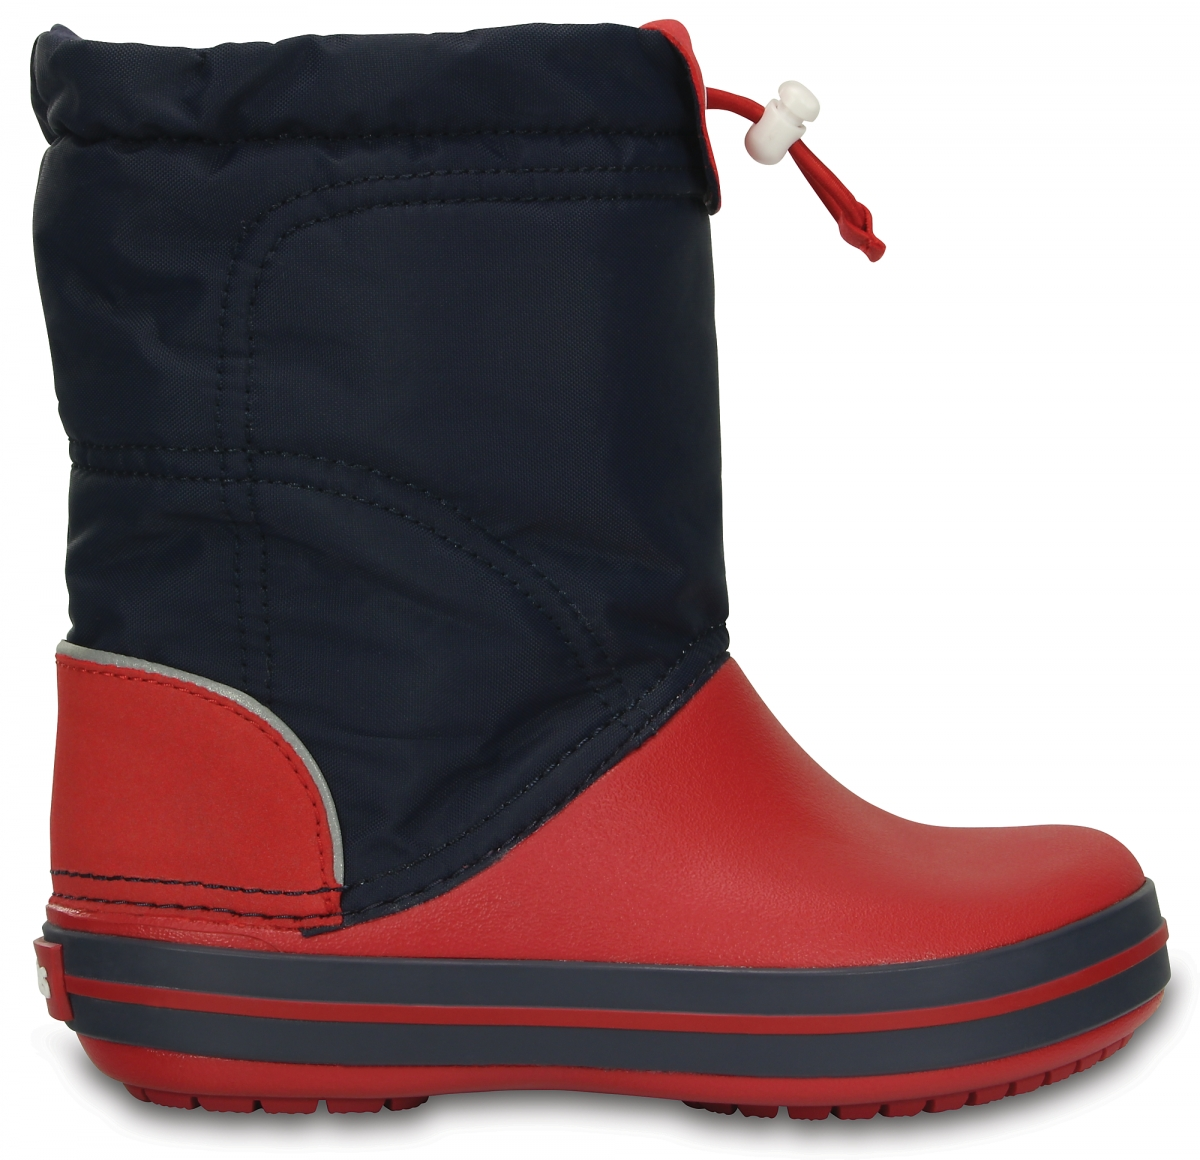 Crocs Crocband LodgePoint Boot Kids Navy/Red, C12 (29-30)